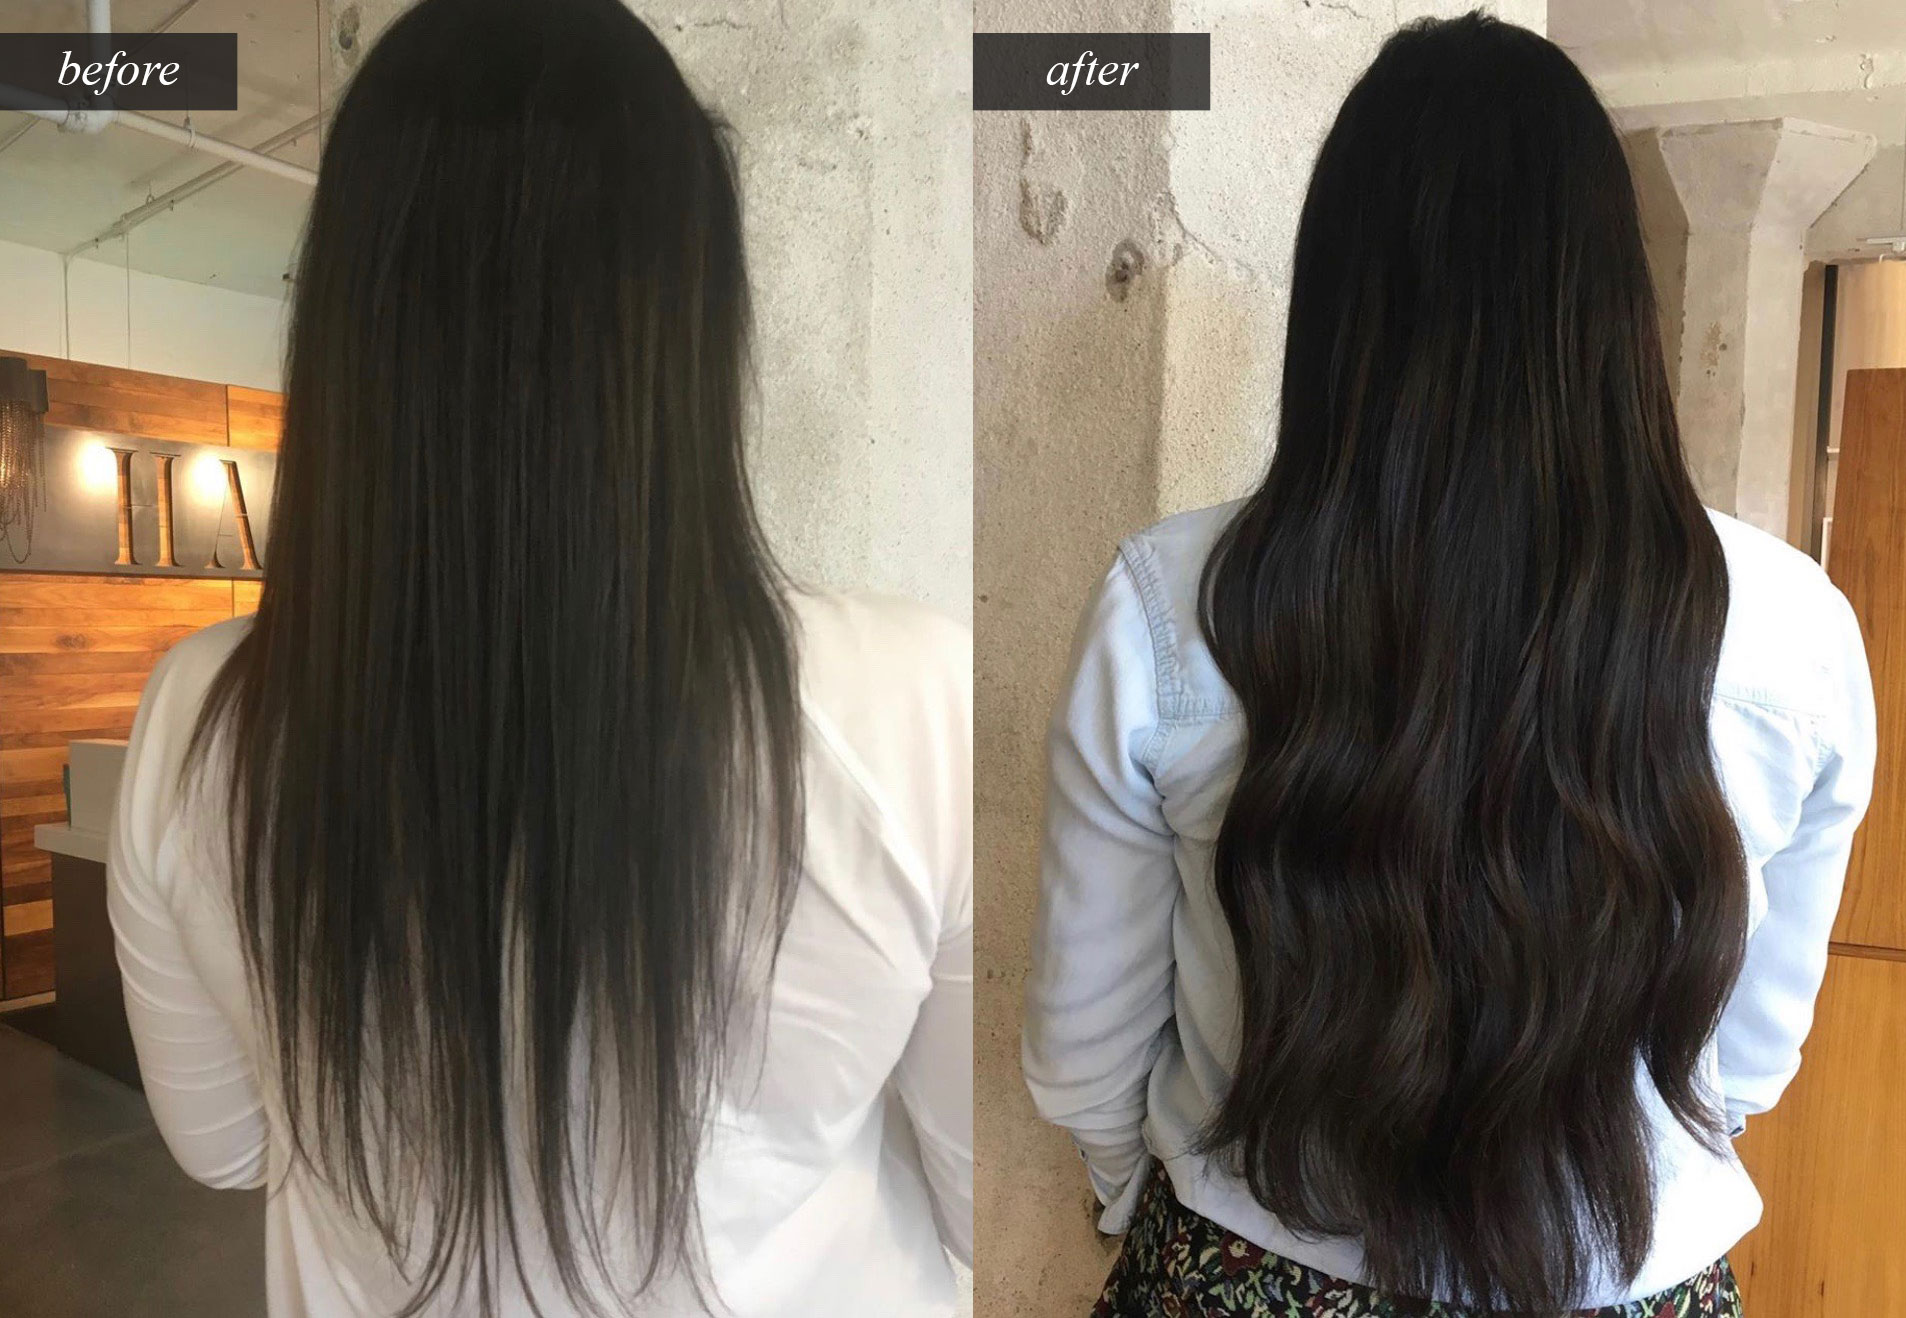 hair-extensions-haus-salon-before-after.jpg